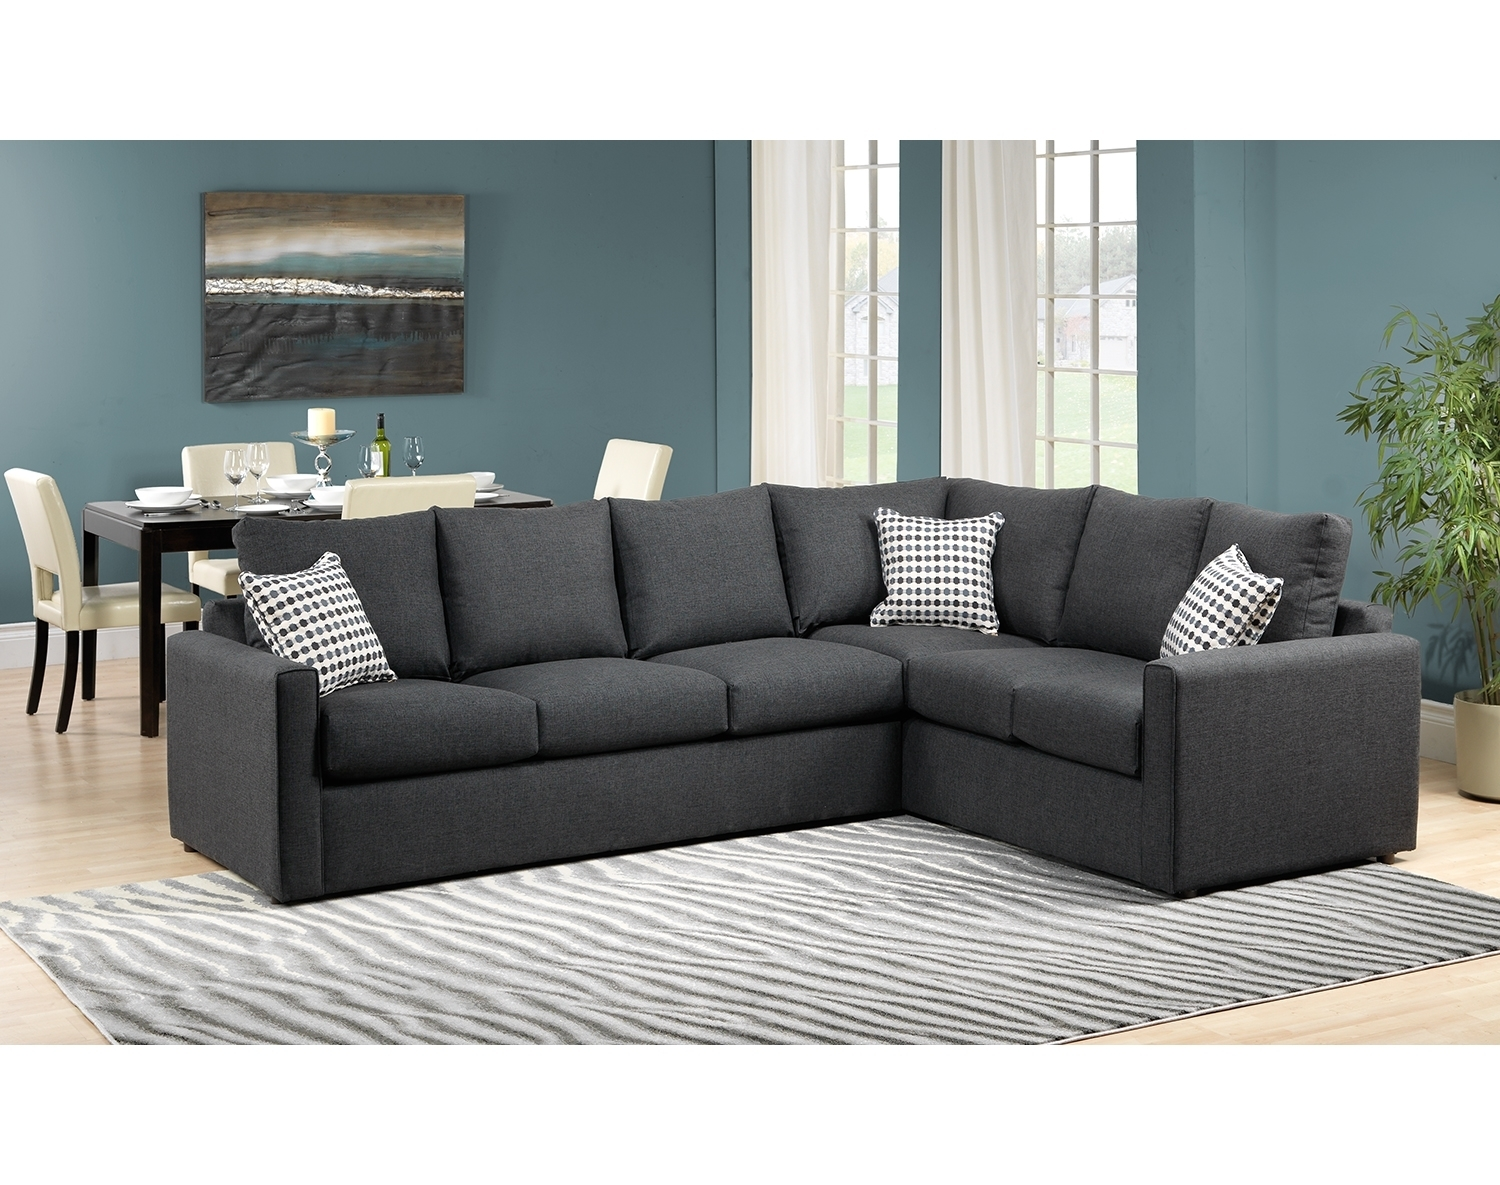 Sectional Sofa Bed Toronto – Image Of Ruostejarvi With Sectional Sofas In Toronto (View 8 of 10)